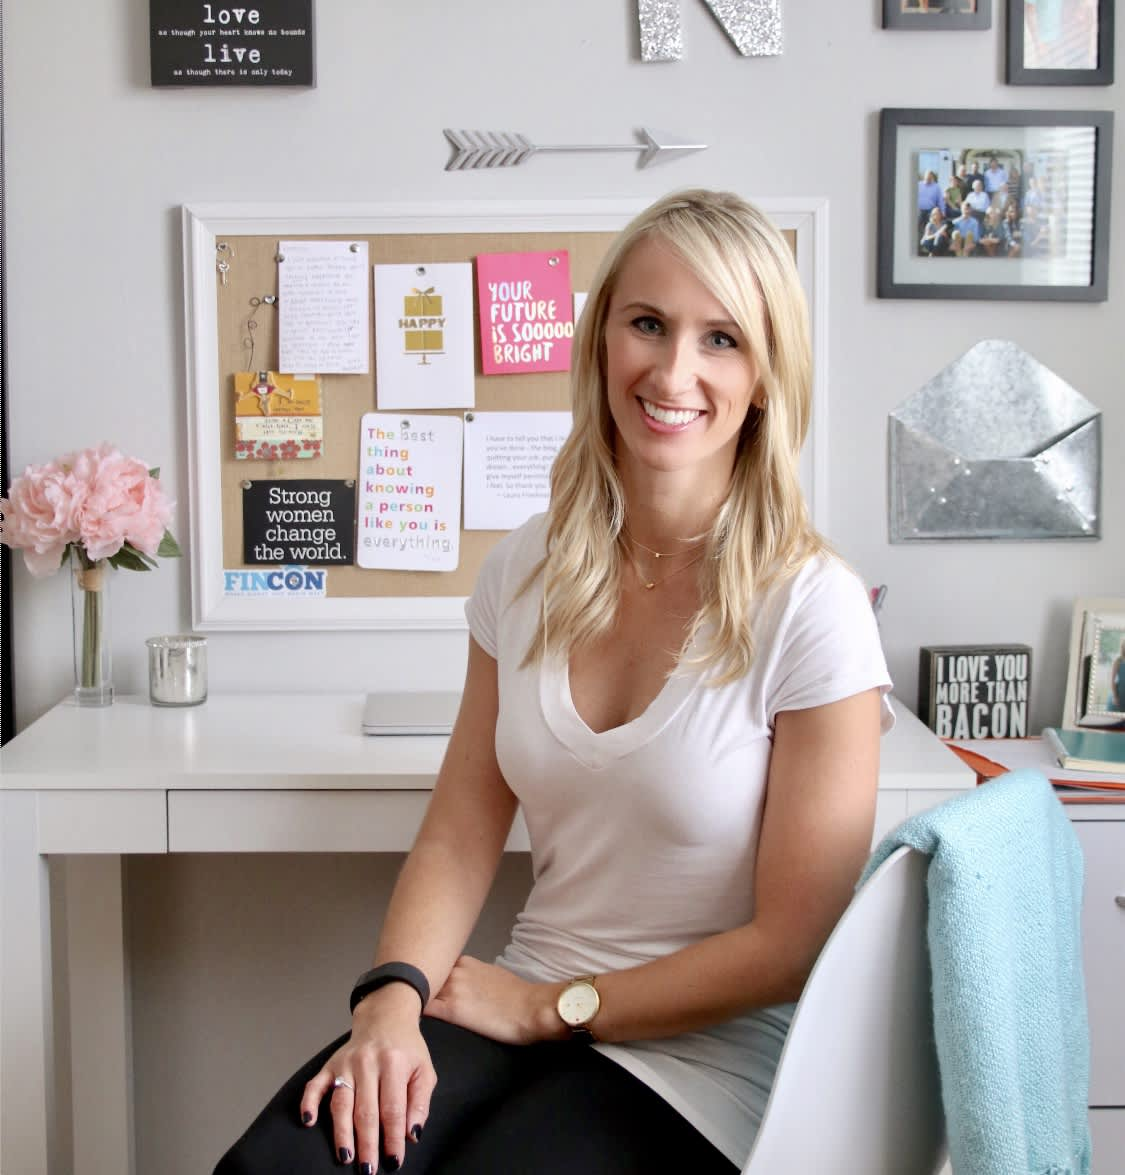 Natalie Bacon ran a personal finance blog on the side while pursuing a financial advisor career.